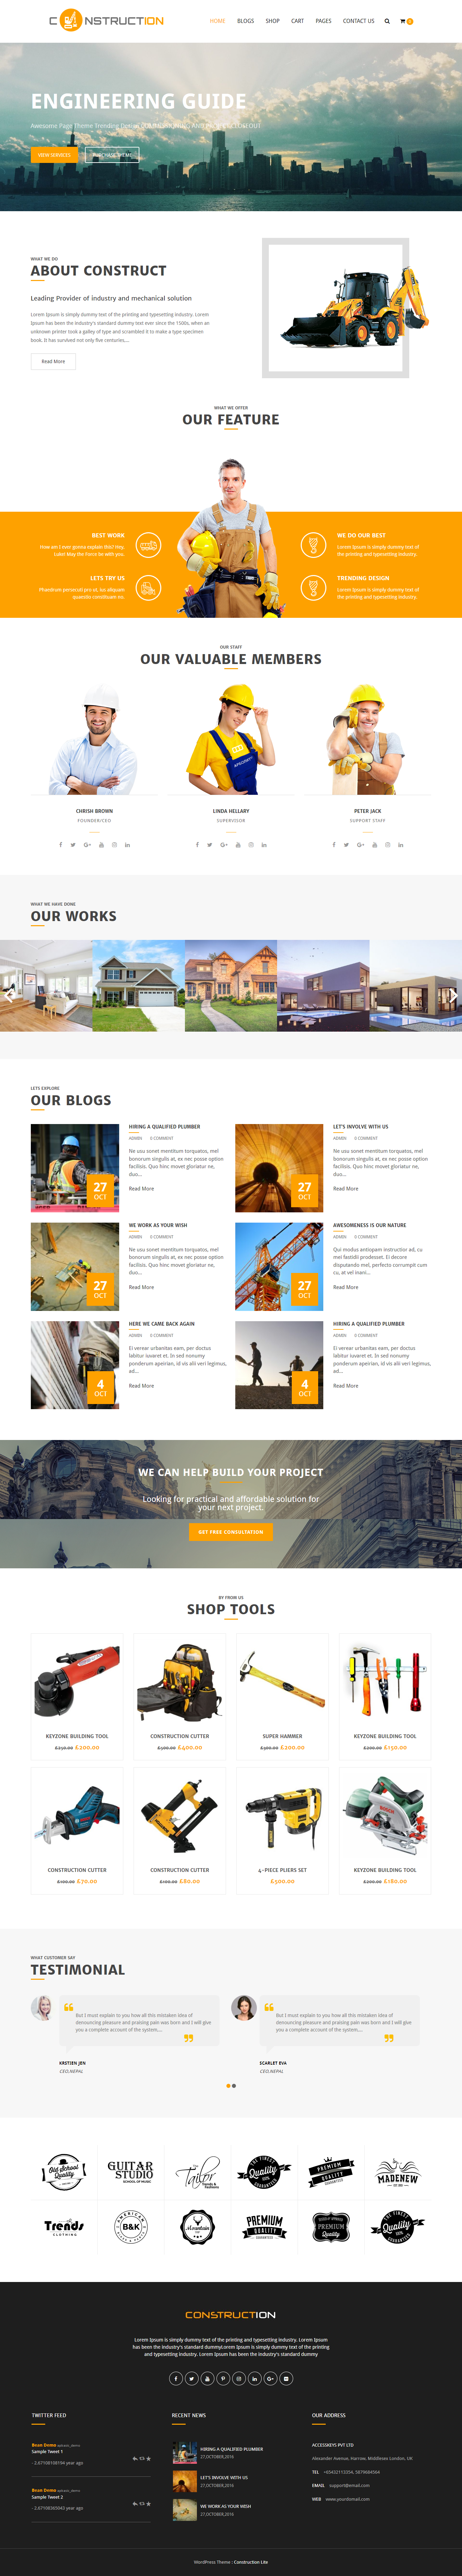 Construction Lite - Full Page Preview